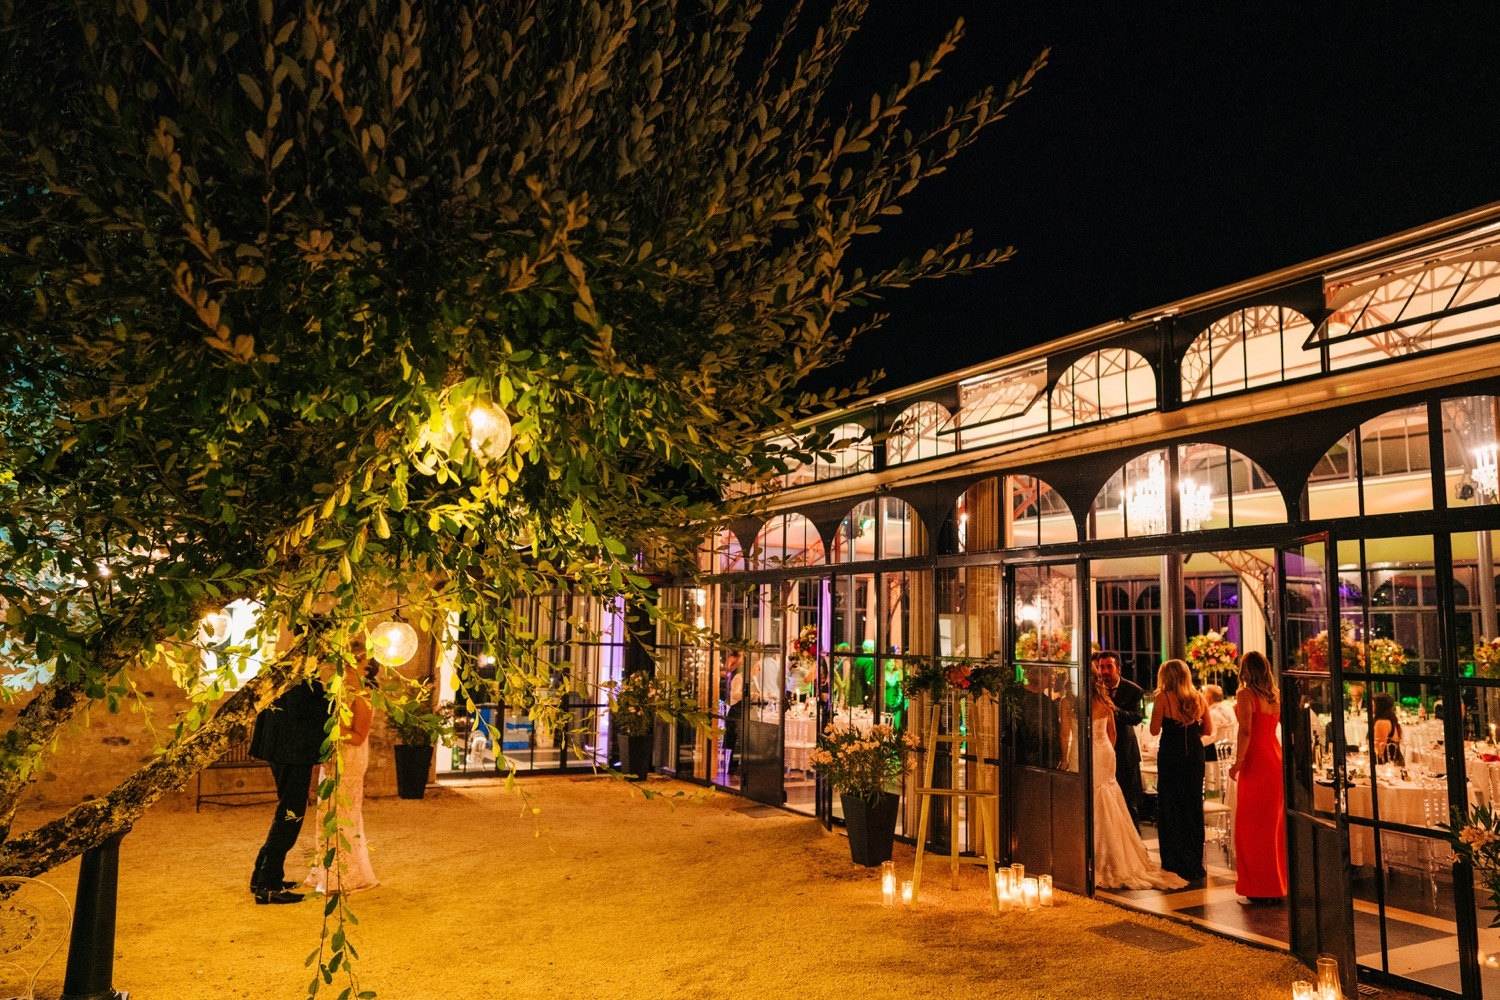 Guests celebrate in the Orangerie at Domaine La Fauconnie in France at night at a wedding reception.